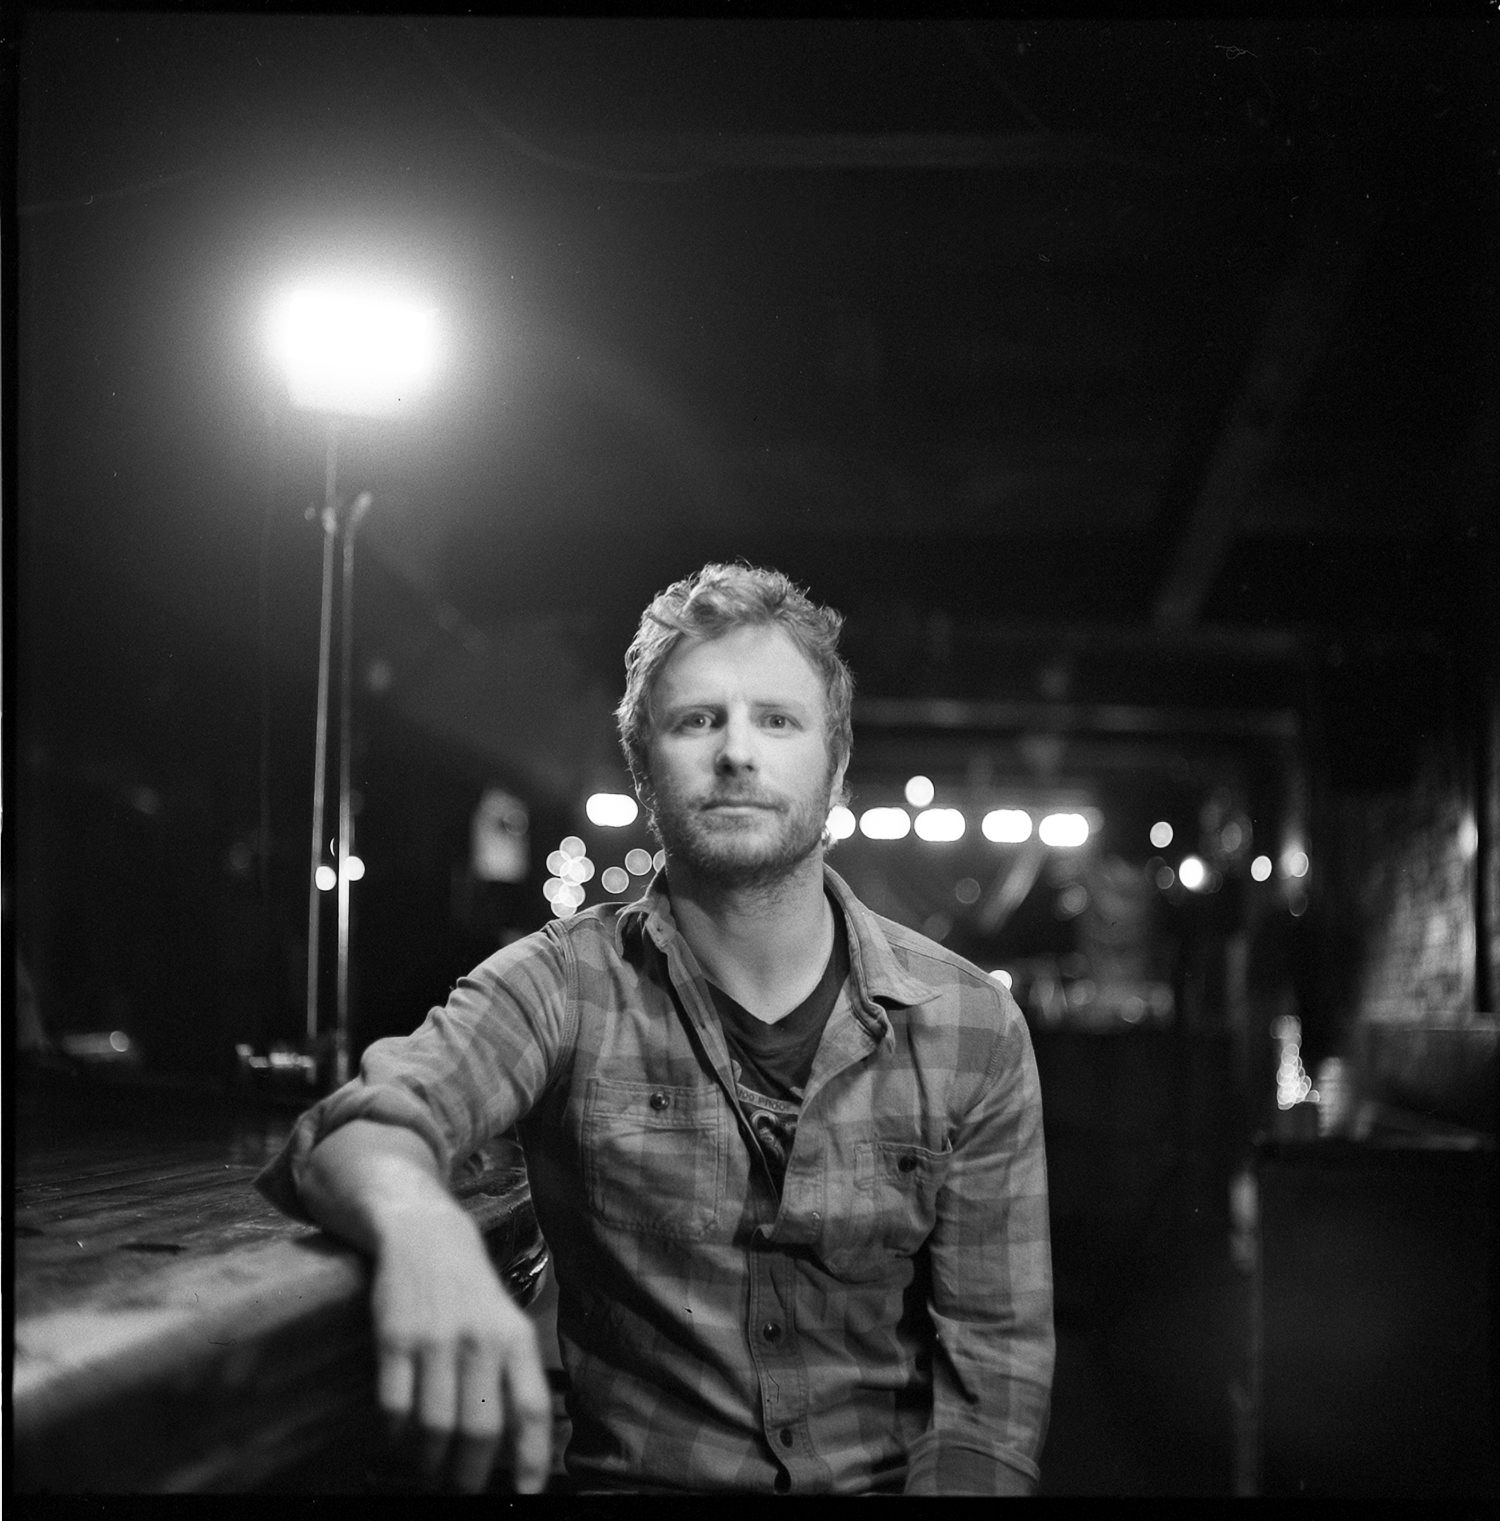 32-Dierks-Bentley-Portrait-for-Country-Music-Television-Black-and-White_Ilford-HP5-Mamiya-C330.JPG